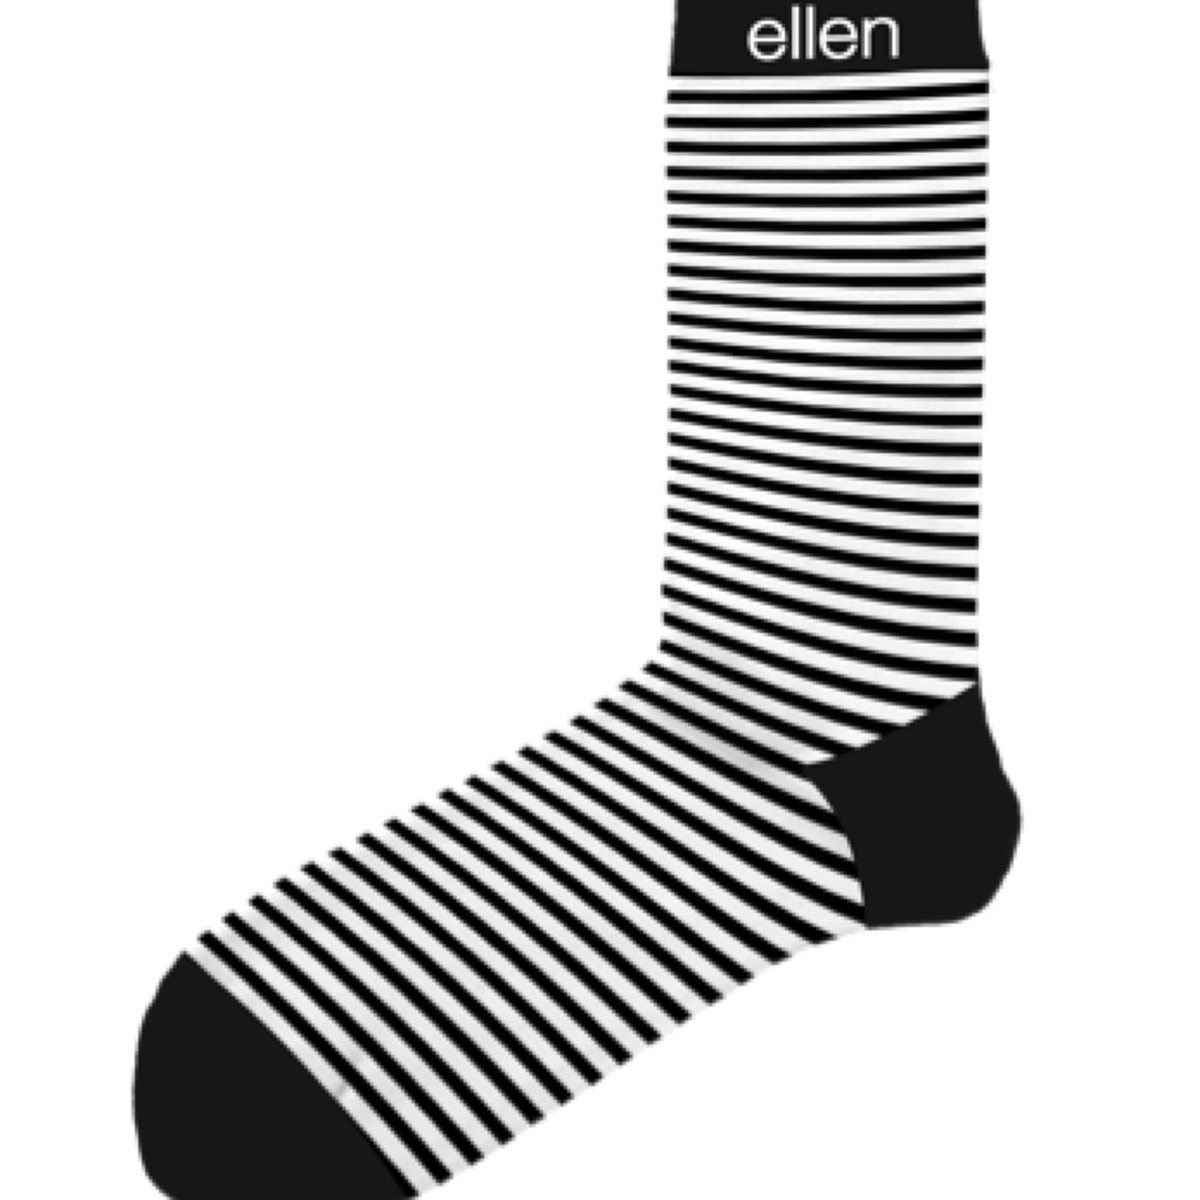 Ellen Show Black & White Stripe Socks